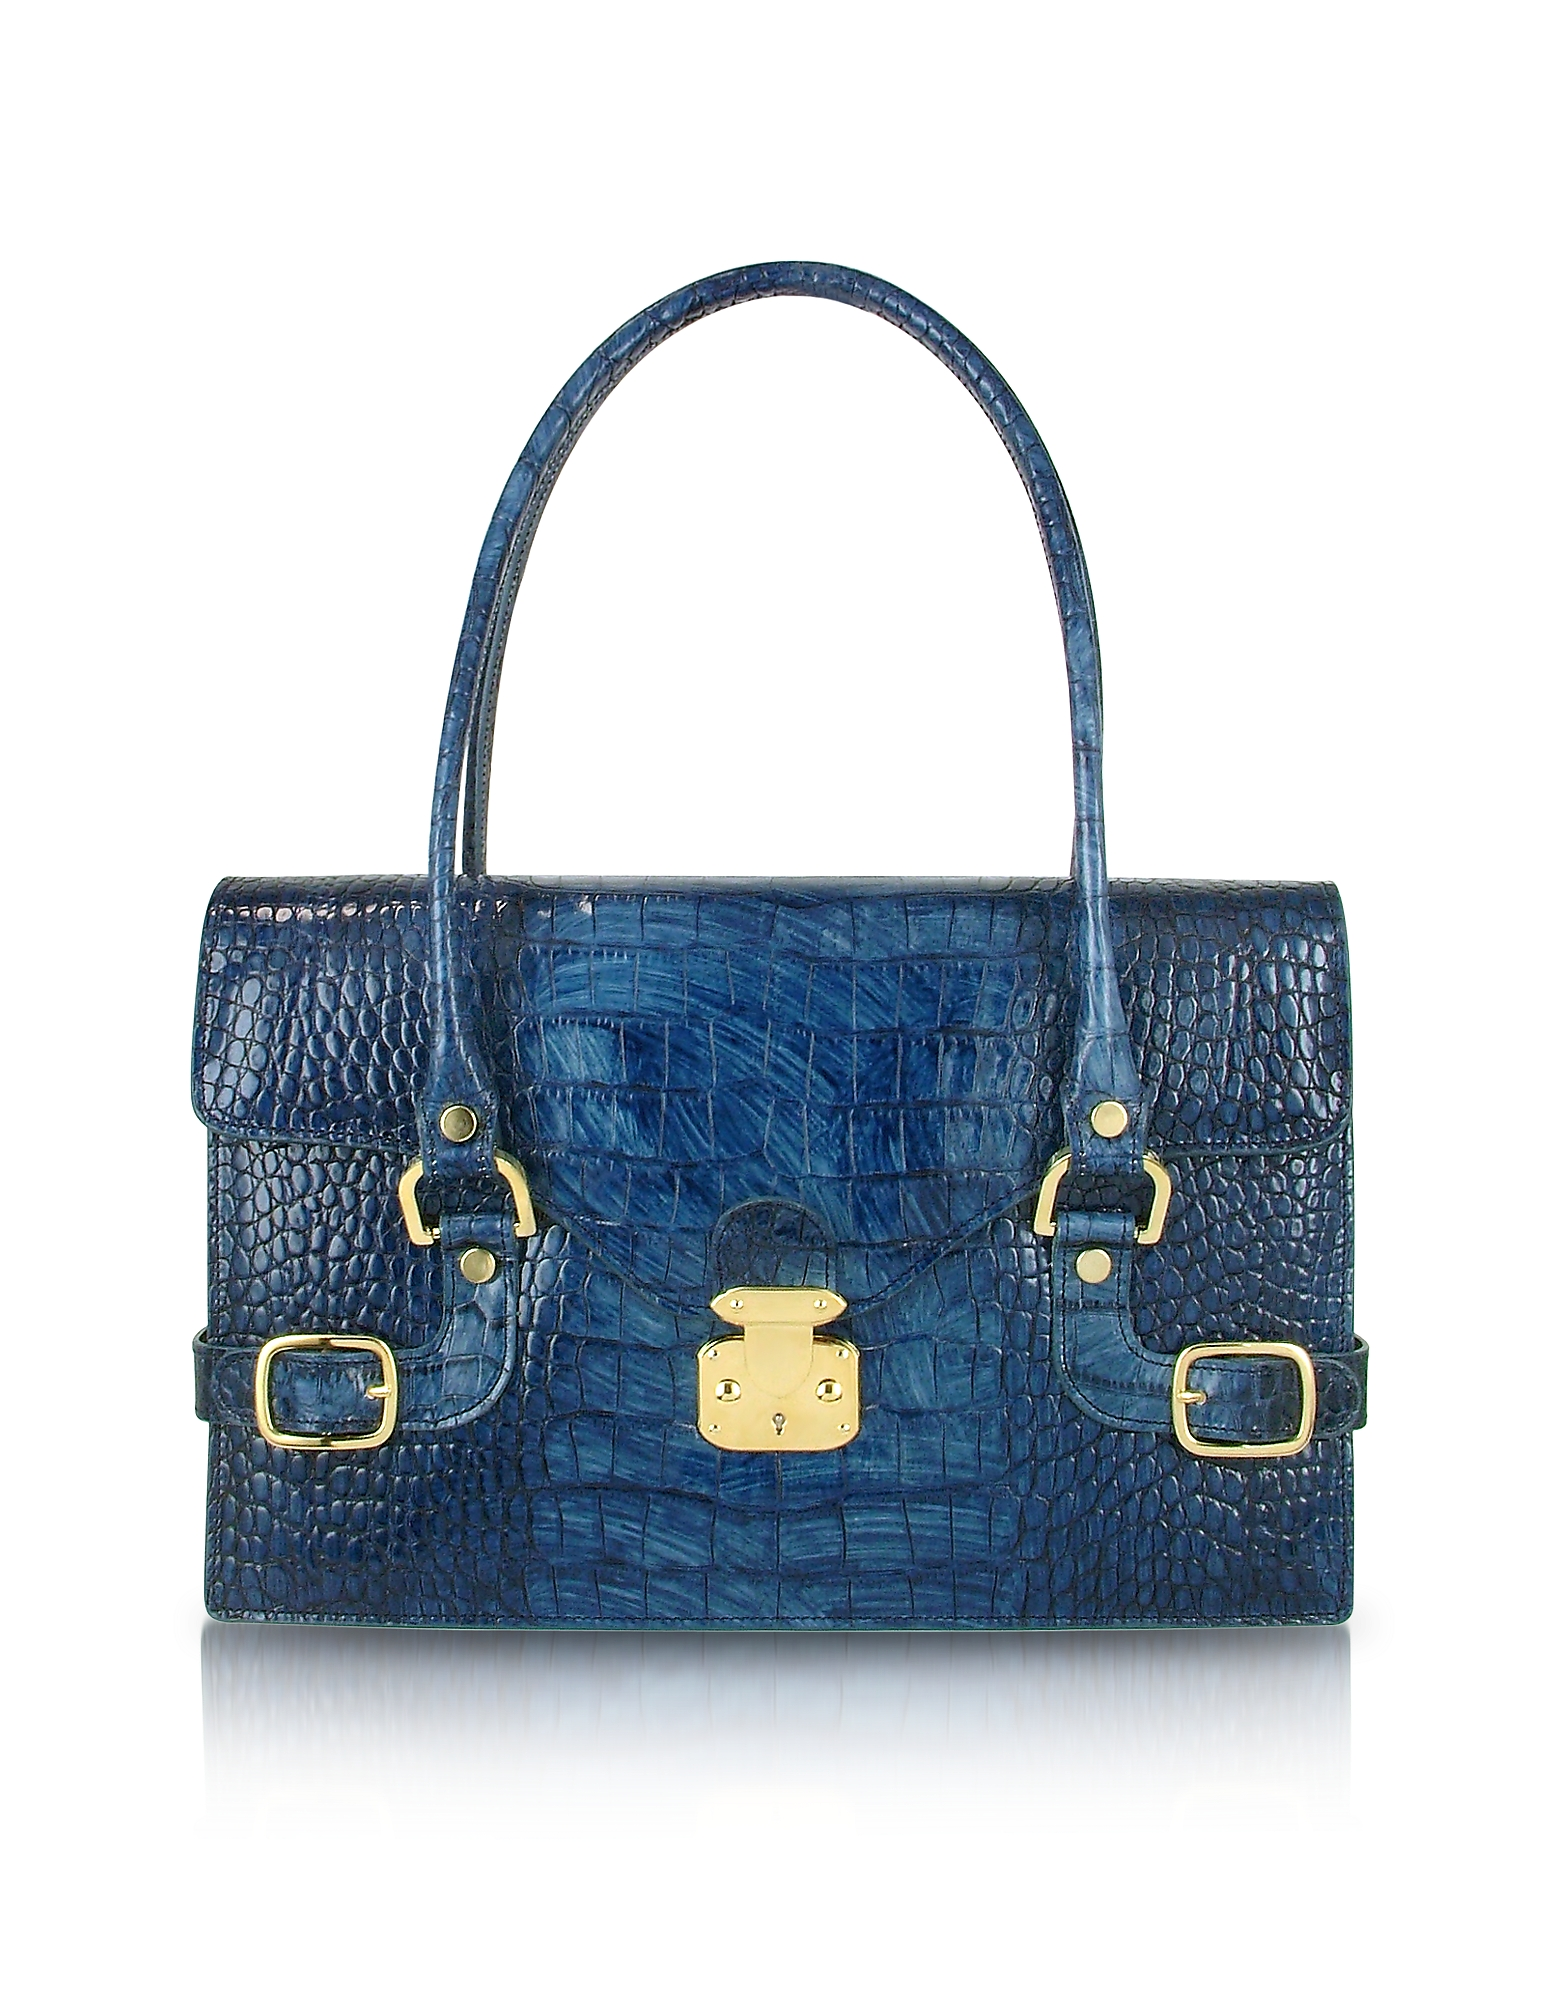 L.A.P.A. Handbags, Indigo Blue Croco Stamped Italian Leather Shoulder Bag